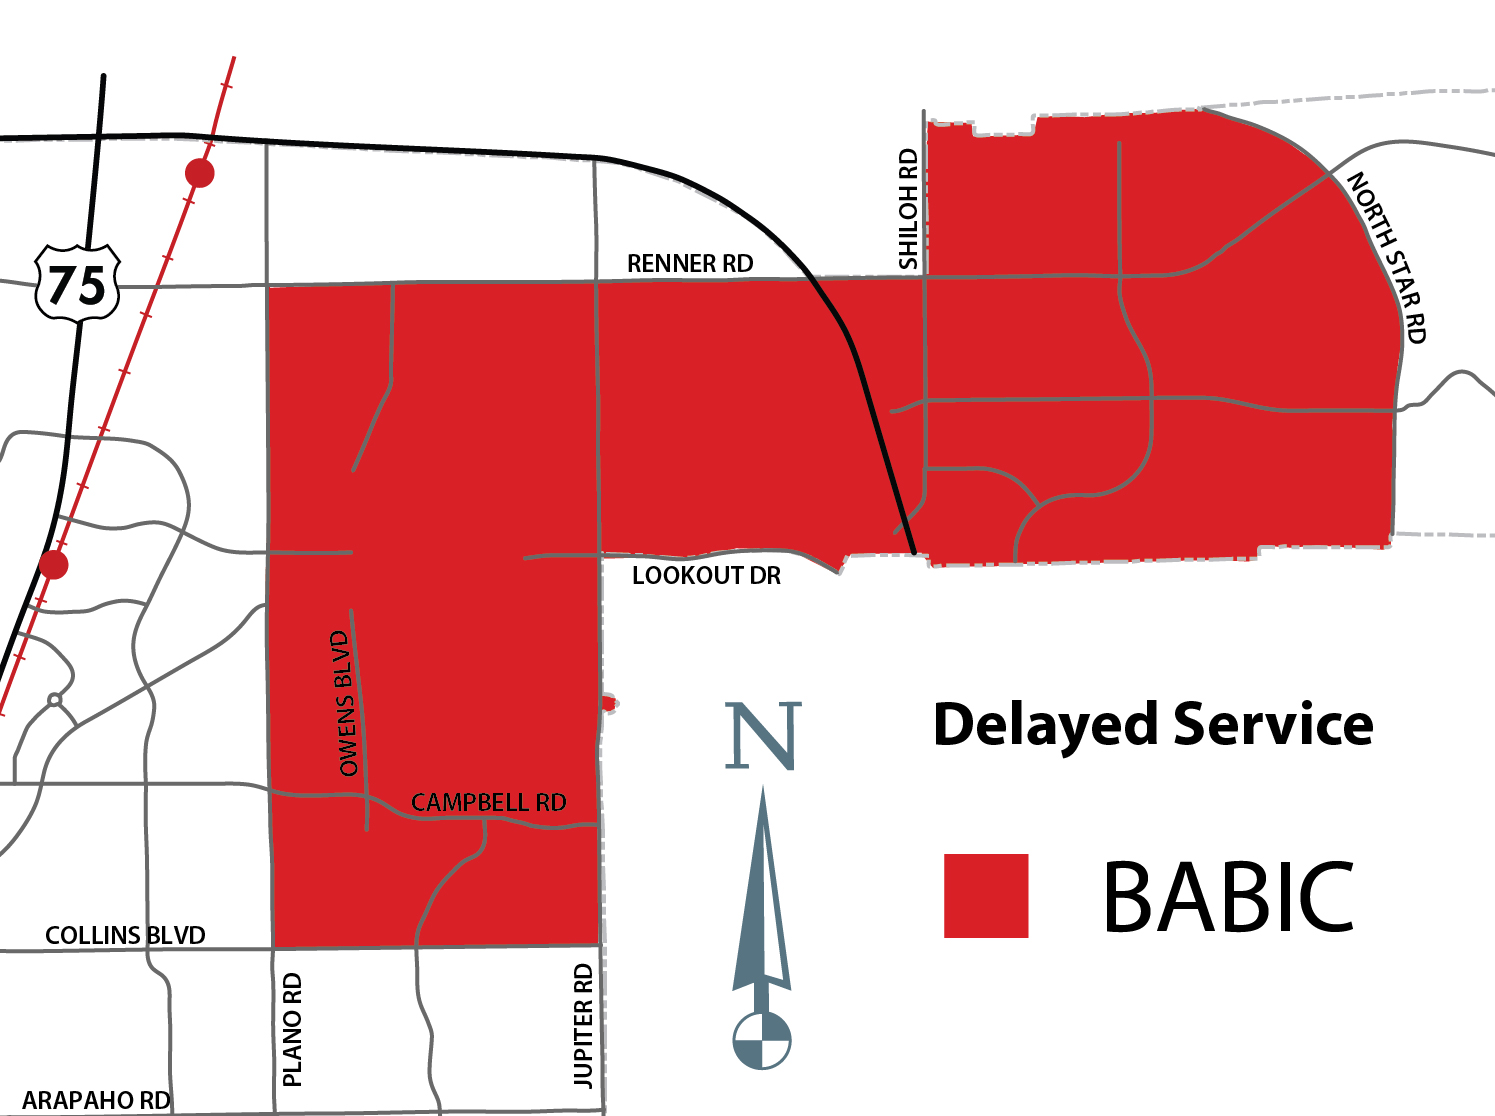 BABIC Recycling Delayed - May 31, 2019_cropped-01